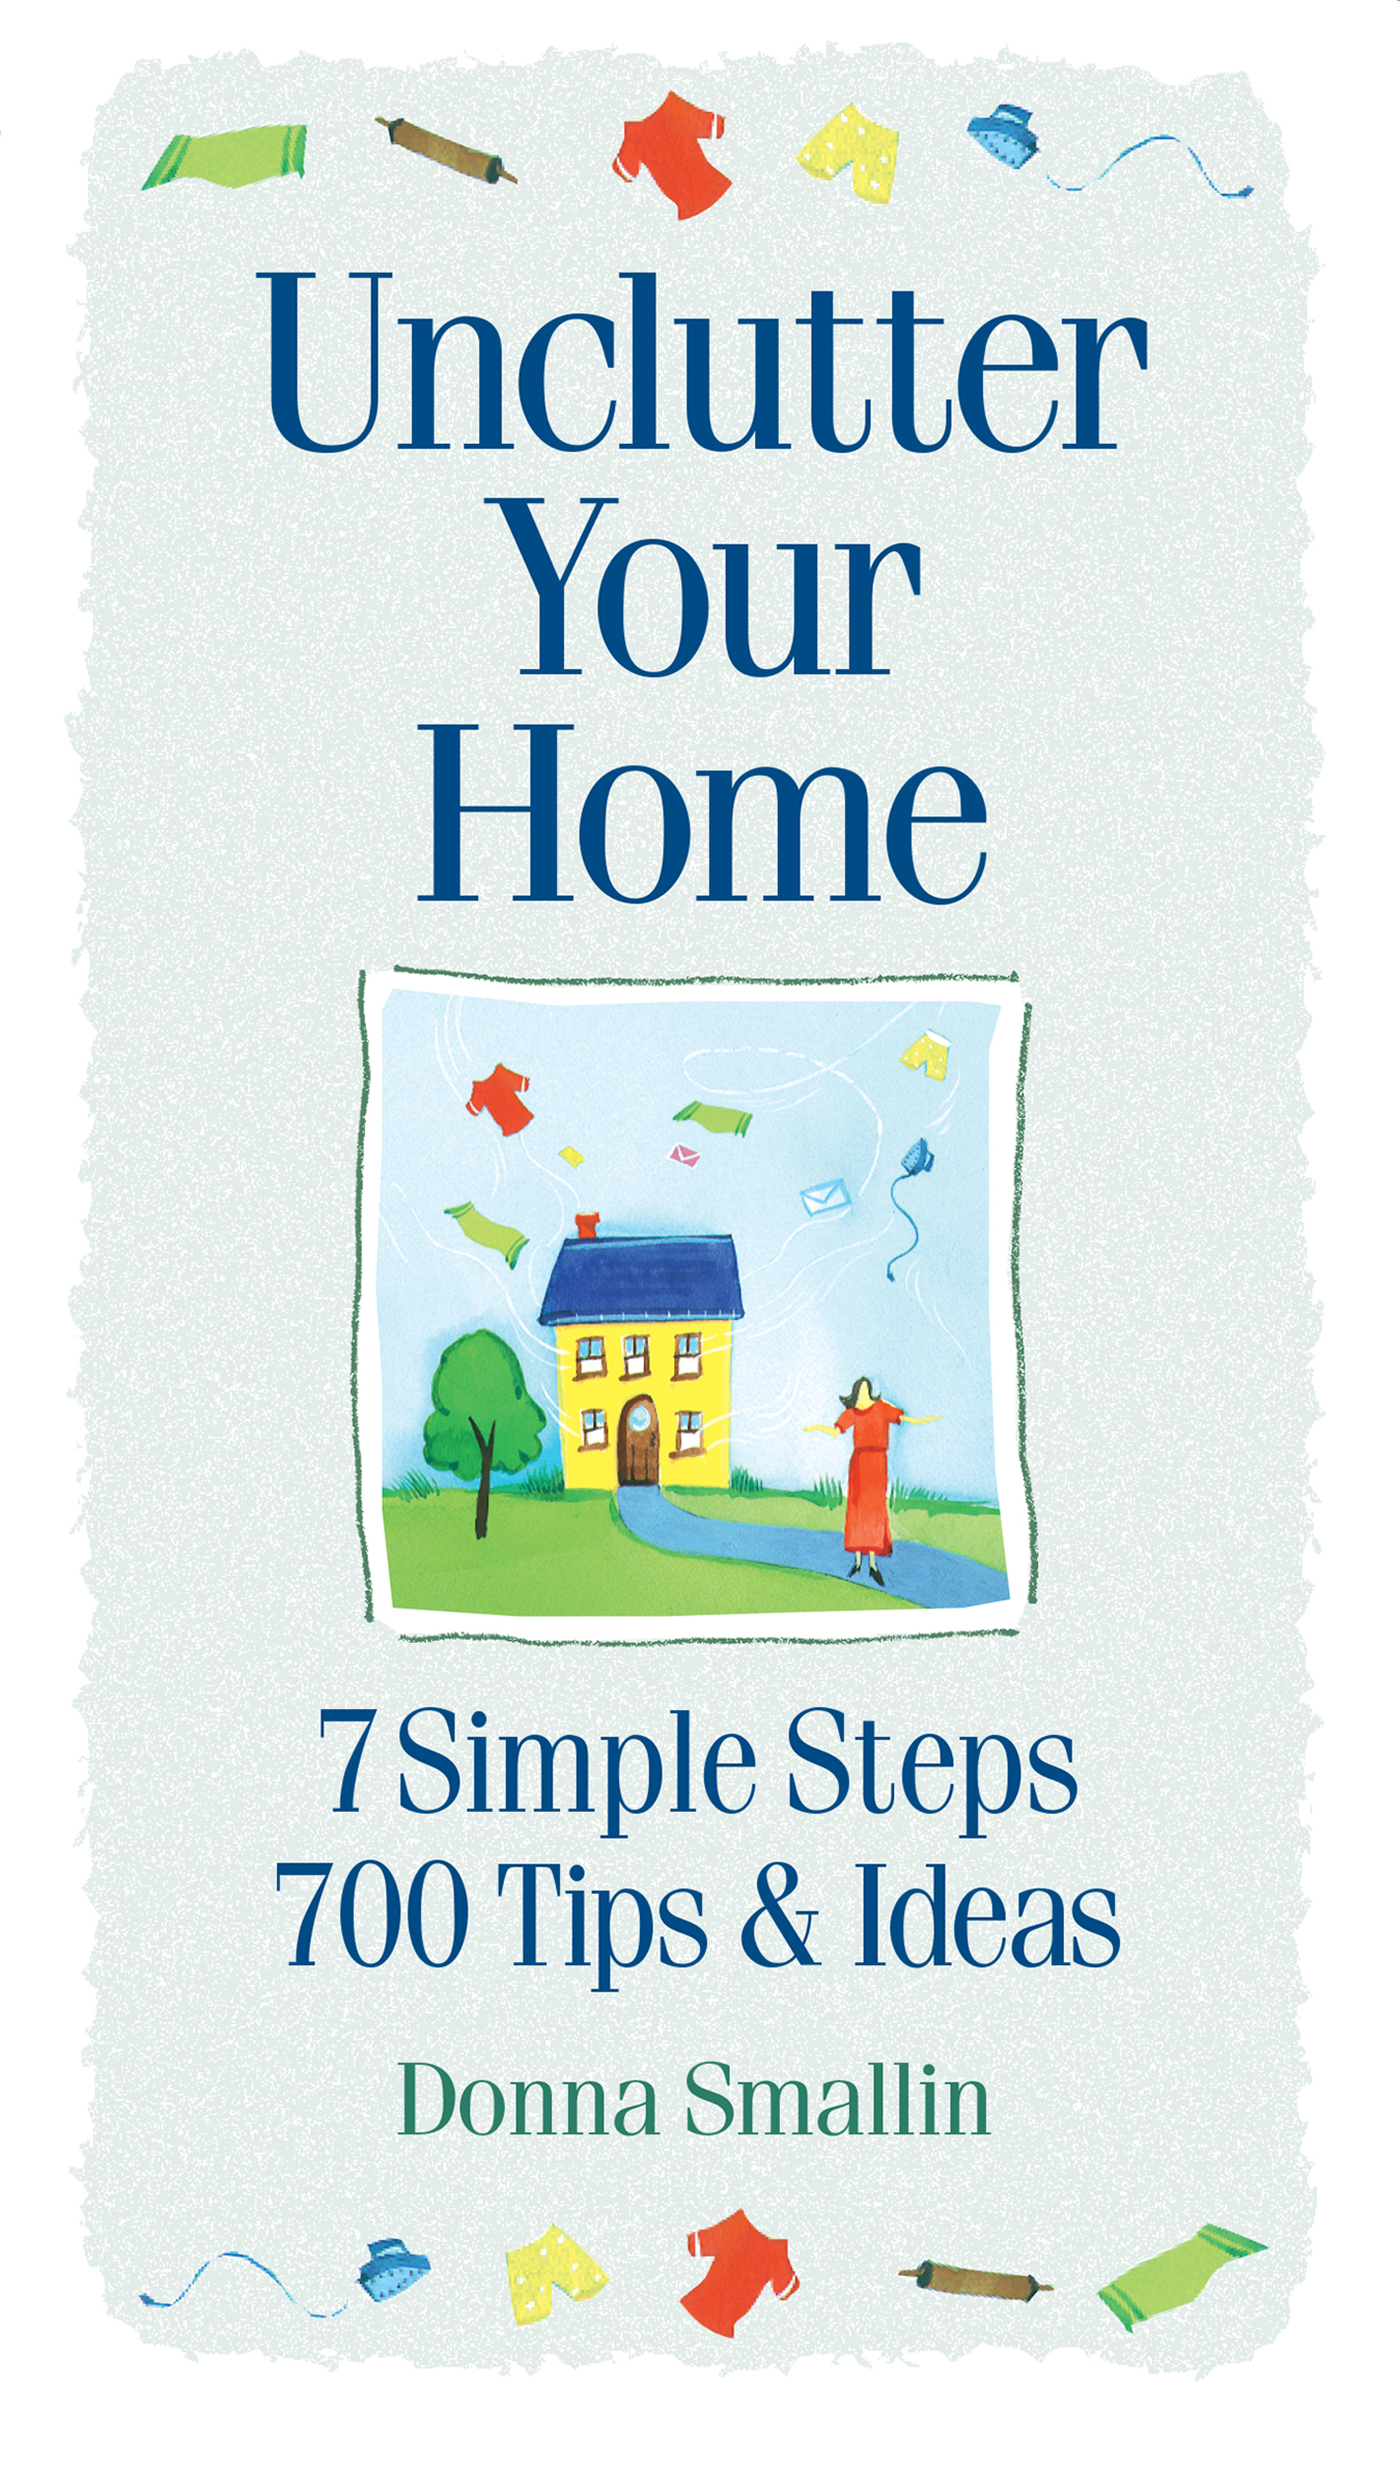 Unclutter Your Home 7 Simple Steps, 700 Tips & Ideas - Donna Smallin